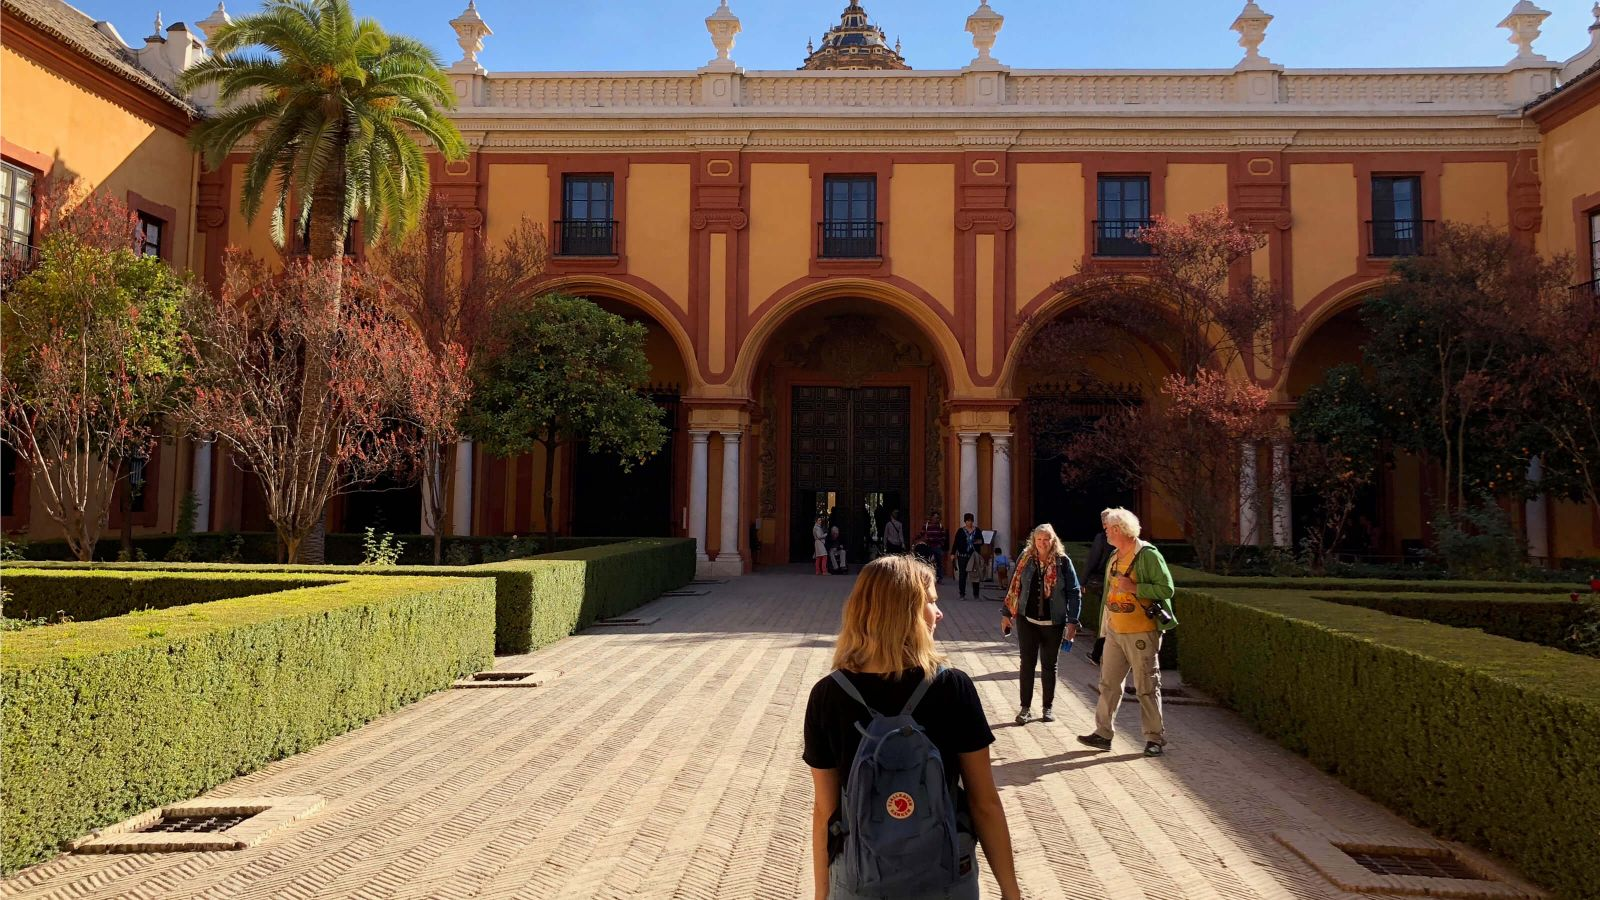 A student explores Denver Ingram at the Alcázar of Seville (the royal palace in Seville, Spain).